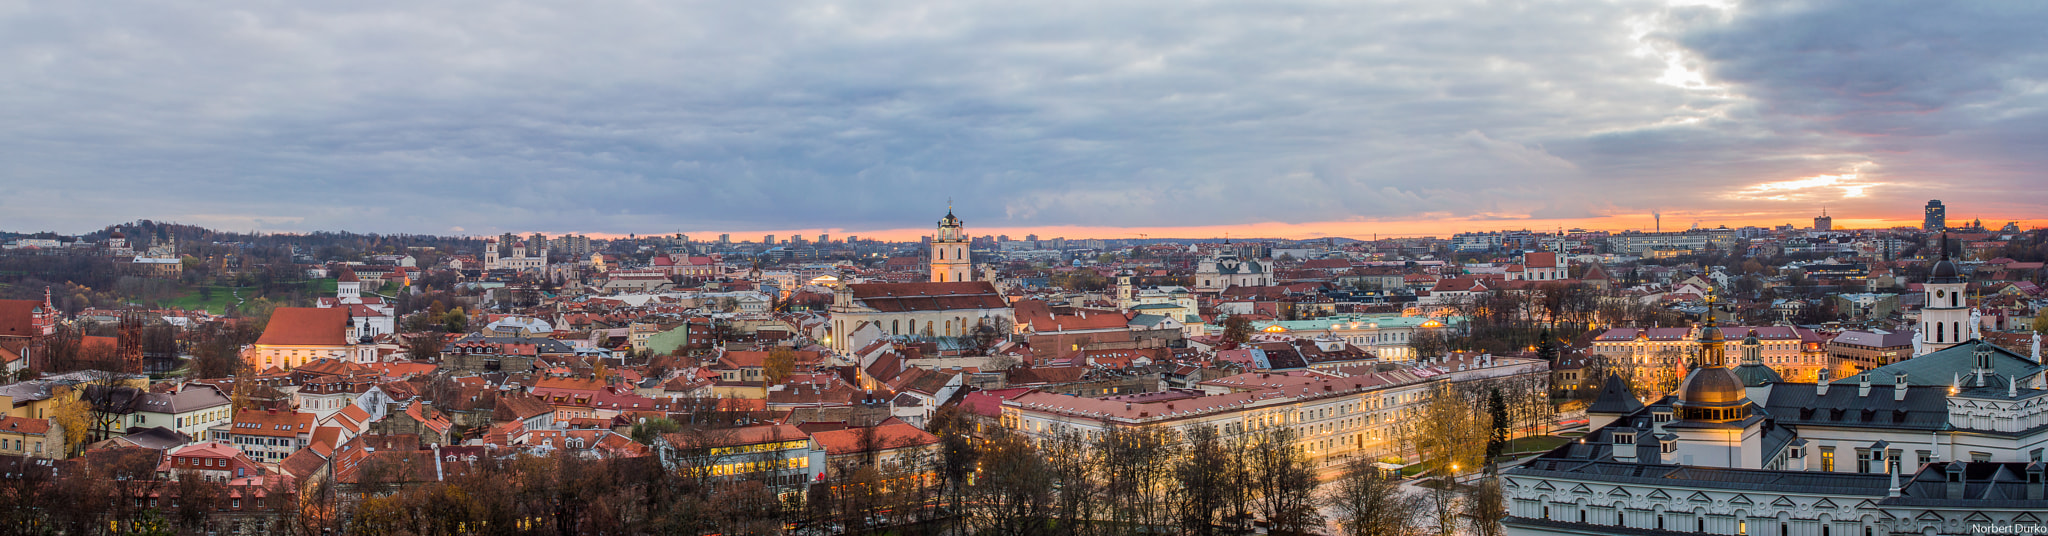 Photograph Vilnius old town in the evening by Norbert Durko on 500px